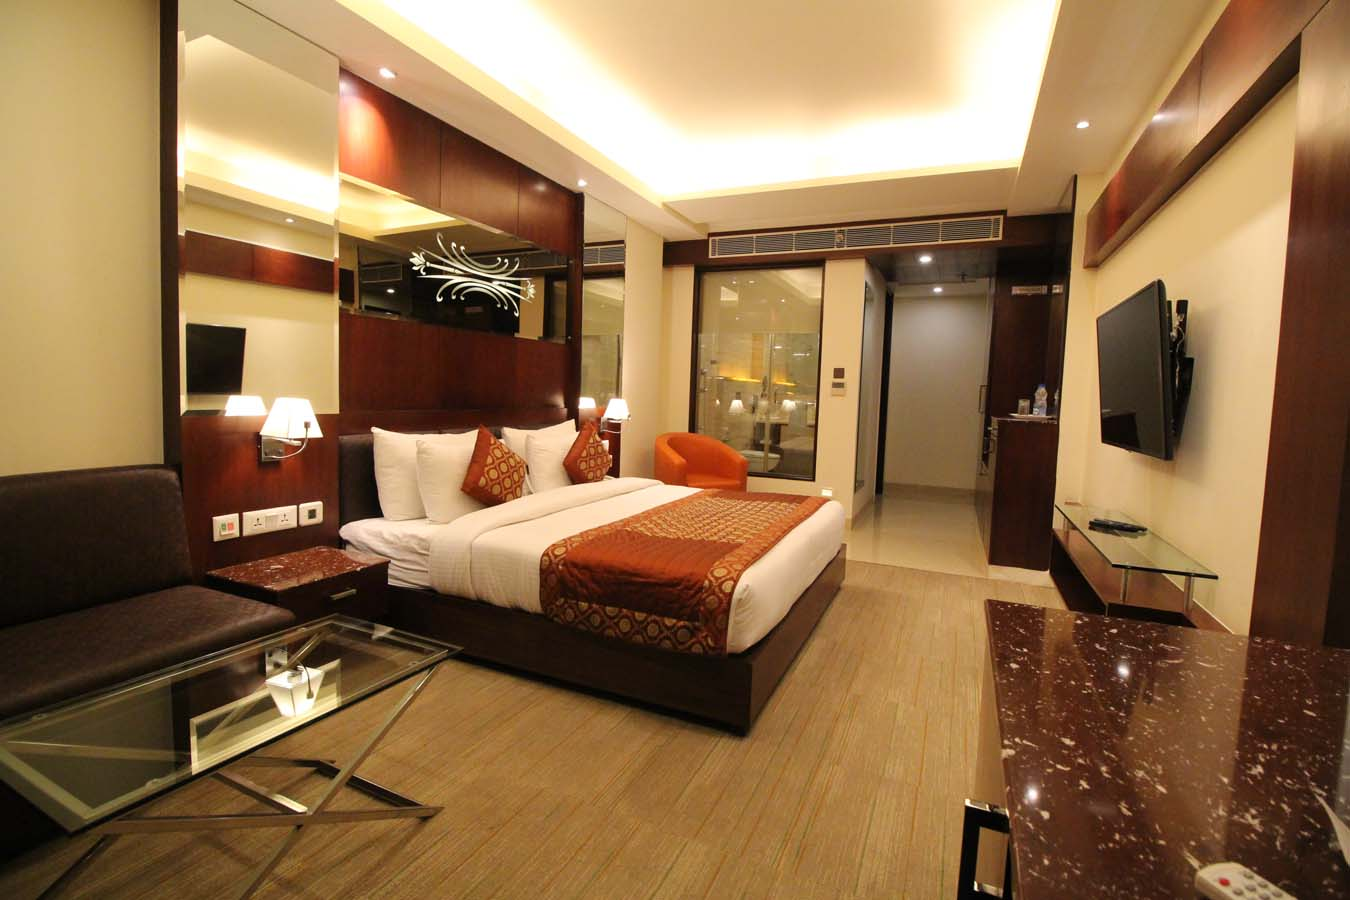 http://hotelgoldengrand.com/images/pages/170809184914.4.jpg